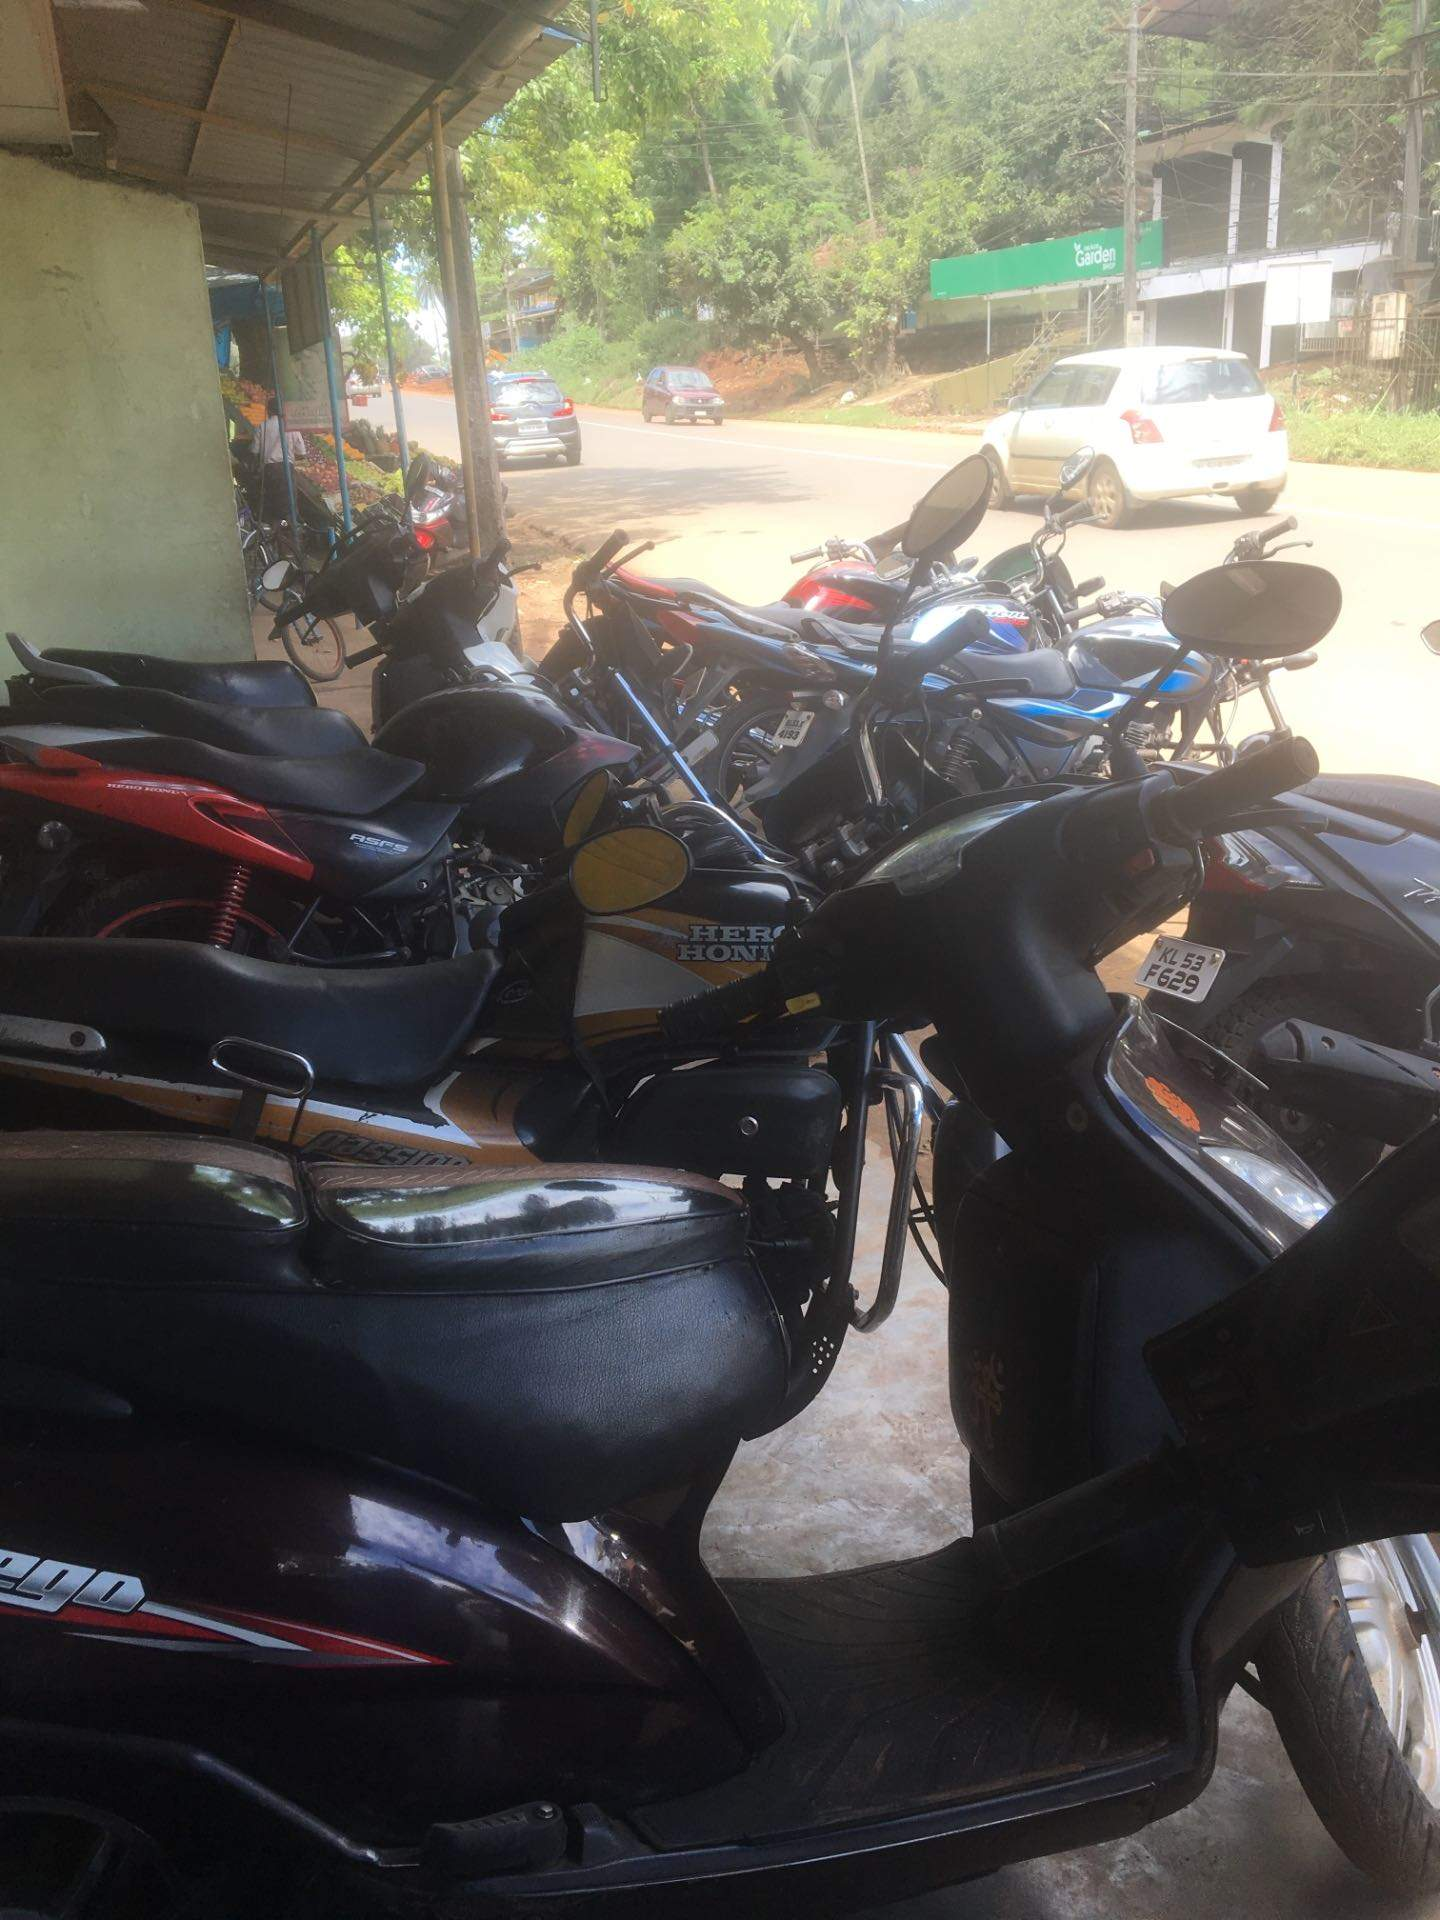 Top Second Hand Motorcycle Dealers In Angadipuram Best Second Hand